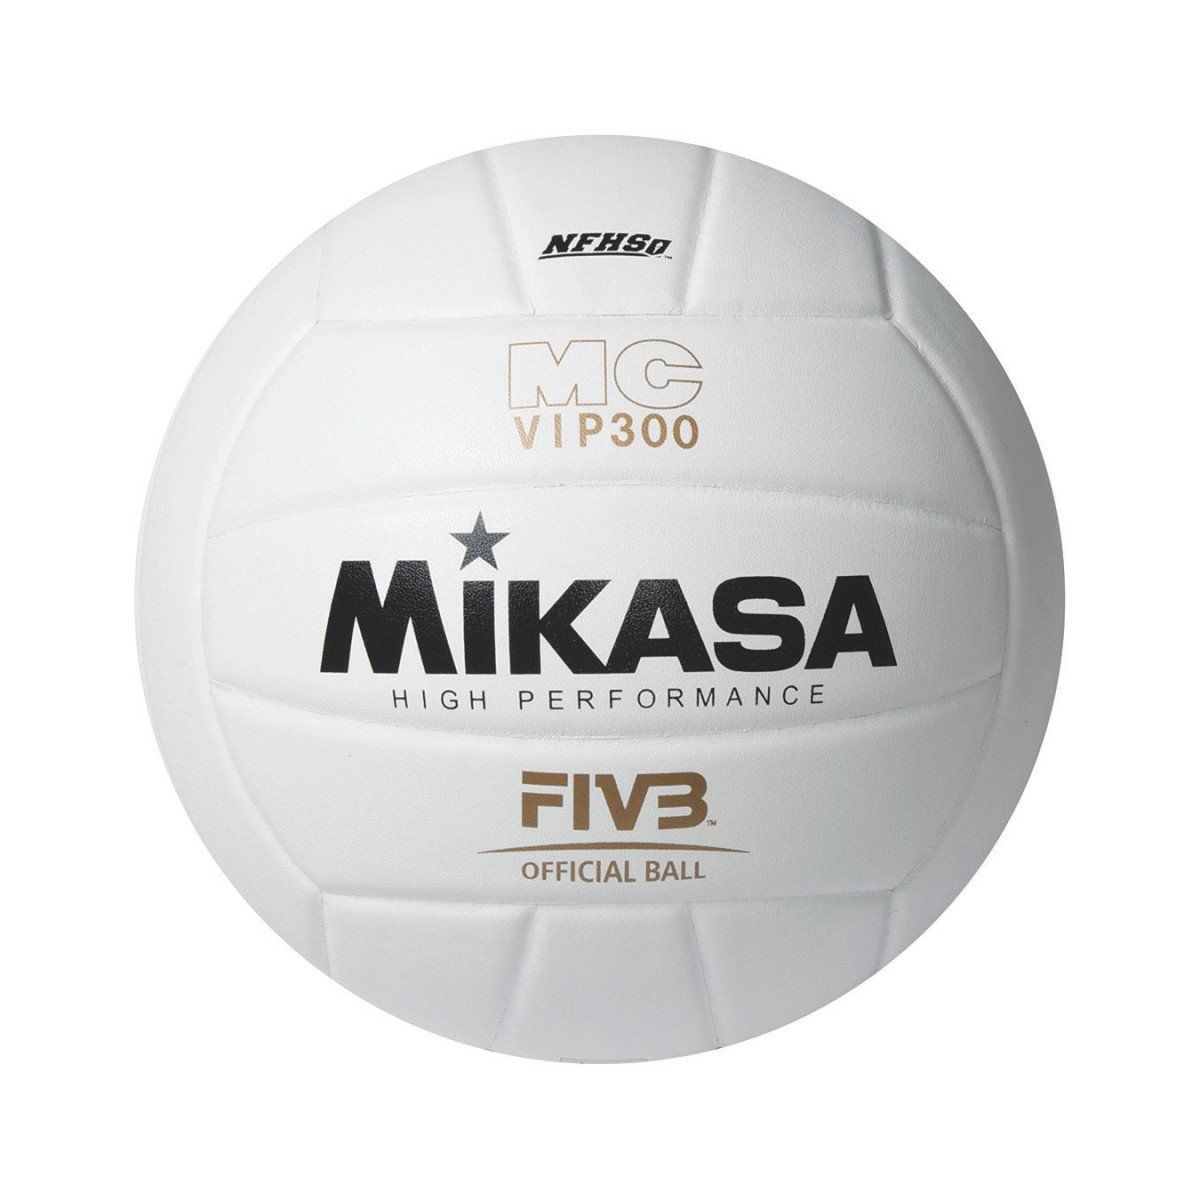 Mikasa Vfc200 Full Grain Leather Volleyball Official Size Usva Nfhs Approved Volleyball Regulation Size And Weig Indoor Volleyball Volleyball Volleyballs